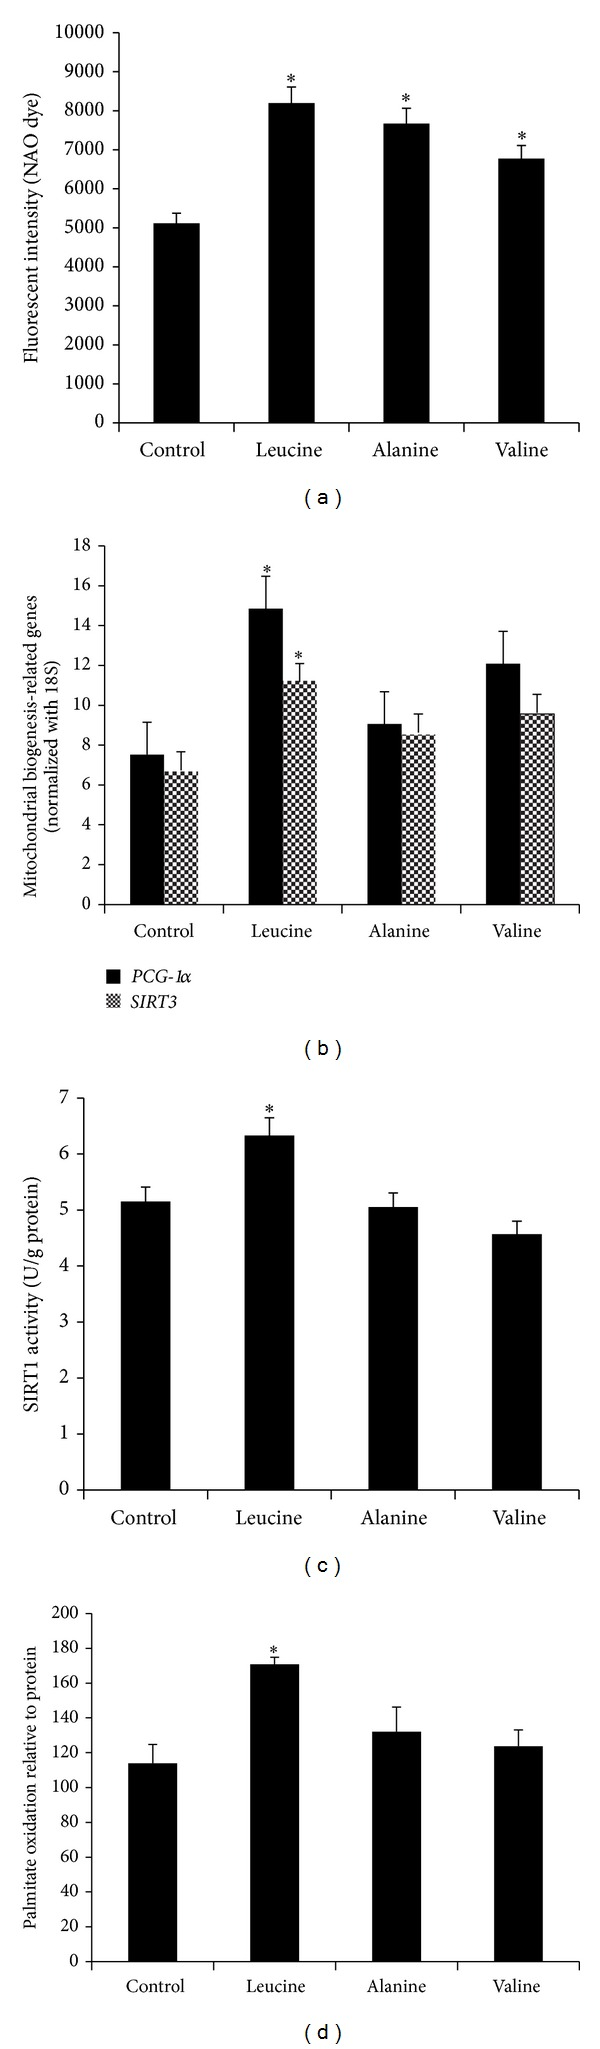 Leucine treatment induces mitochondrial biogenesis and SIRT1 enzymatic activity in C2C12 myotubes. (a) Mitochondrial content was quantitated with NAO dye (10 μ M) 48 hours after treatment with leucine (0.5 mM), alanine (0.5 mM), and valine (0.5 mM); (b) mRNA expression levels of PGC-1α and Sirt3 with the same treatments were evaluated by quantitative RT-PCR. The relative mRNA expression was normalized to 18S and expressed as dark bars for PGC-1α and grey bars for Sirt3 . (c) Cellular SIRT1 activity and (d) palmitate oxidation were measured after treatment for 48 hours. The results were normalized to cellular protein level for each sample. Data are mean ± SE ( n = 4). *Significantly different from controls with P